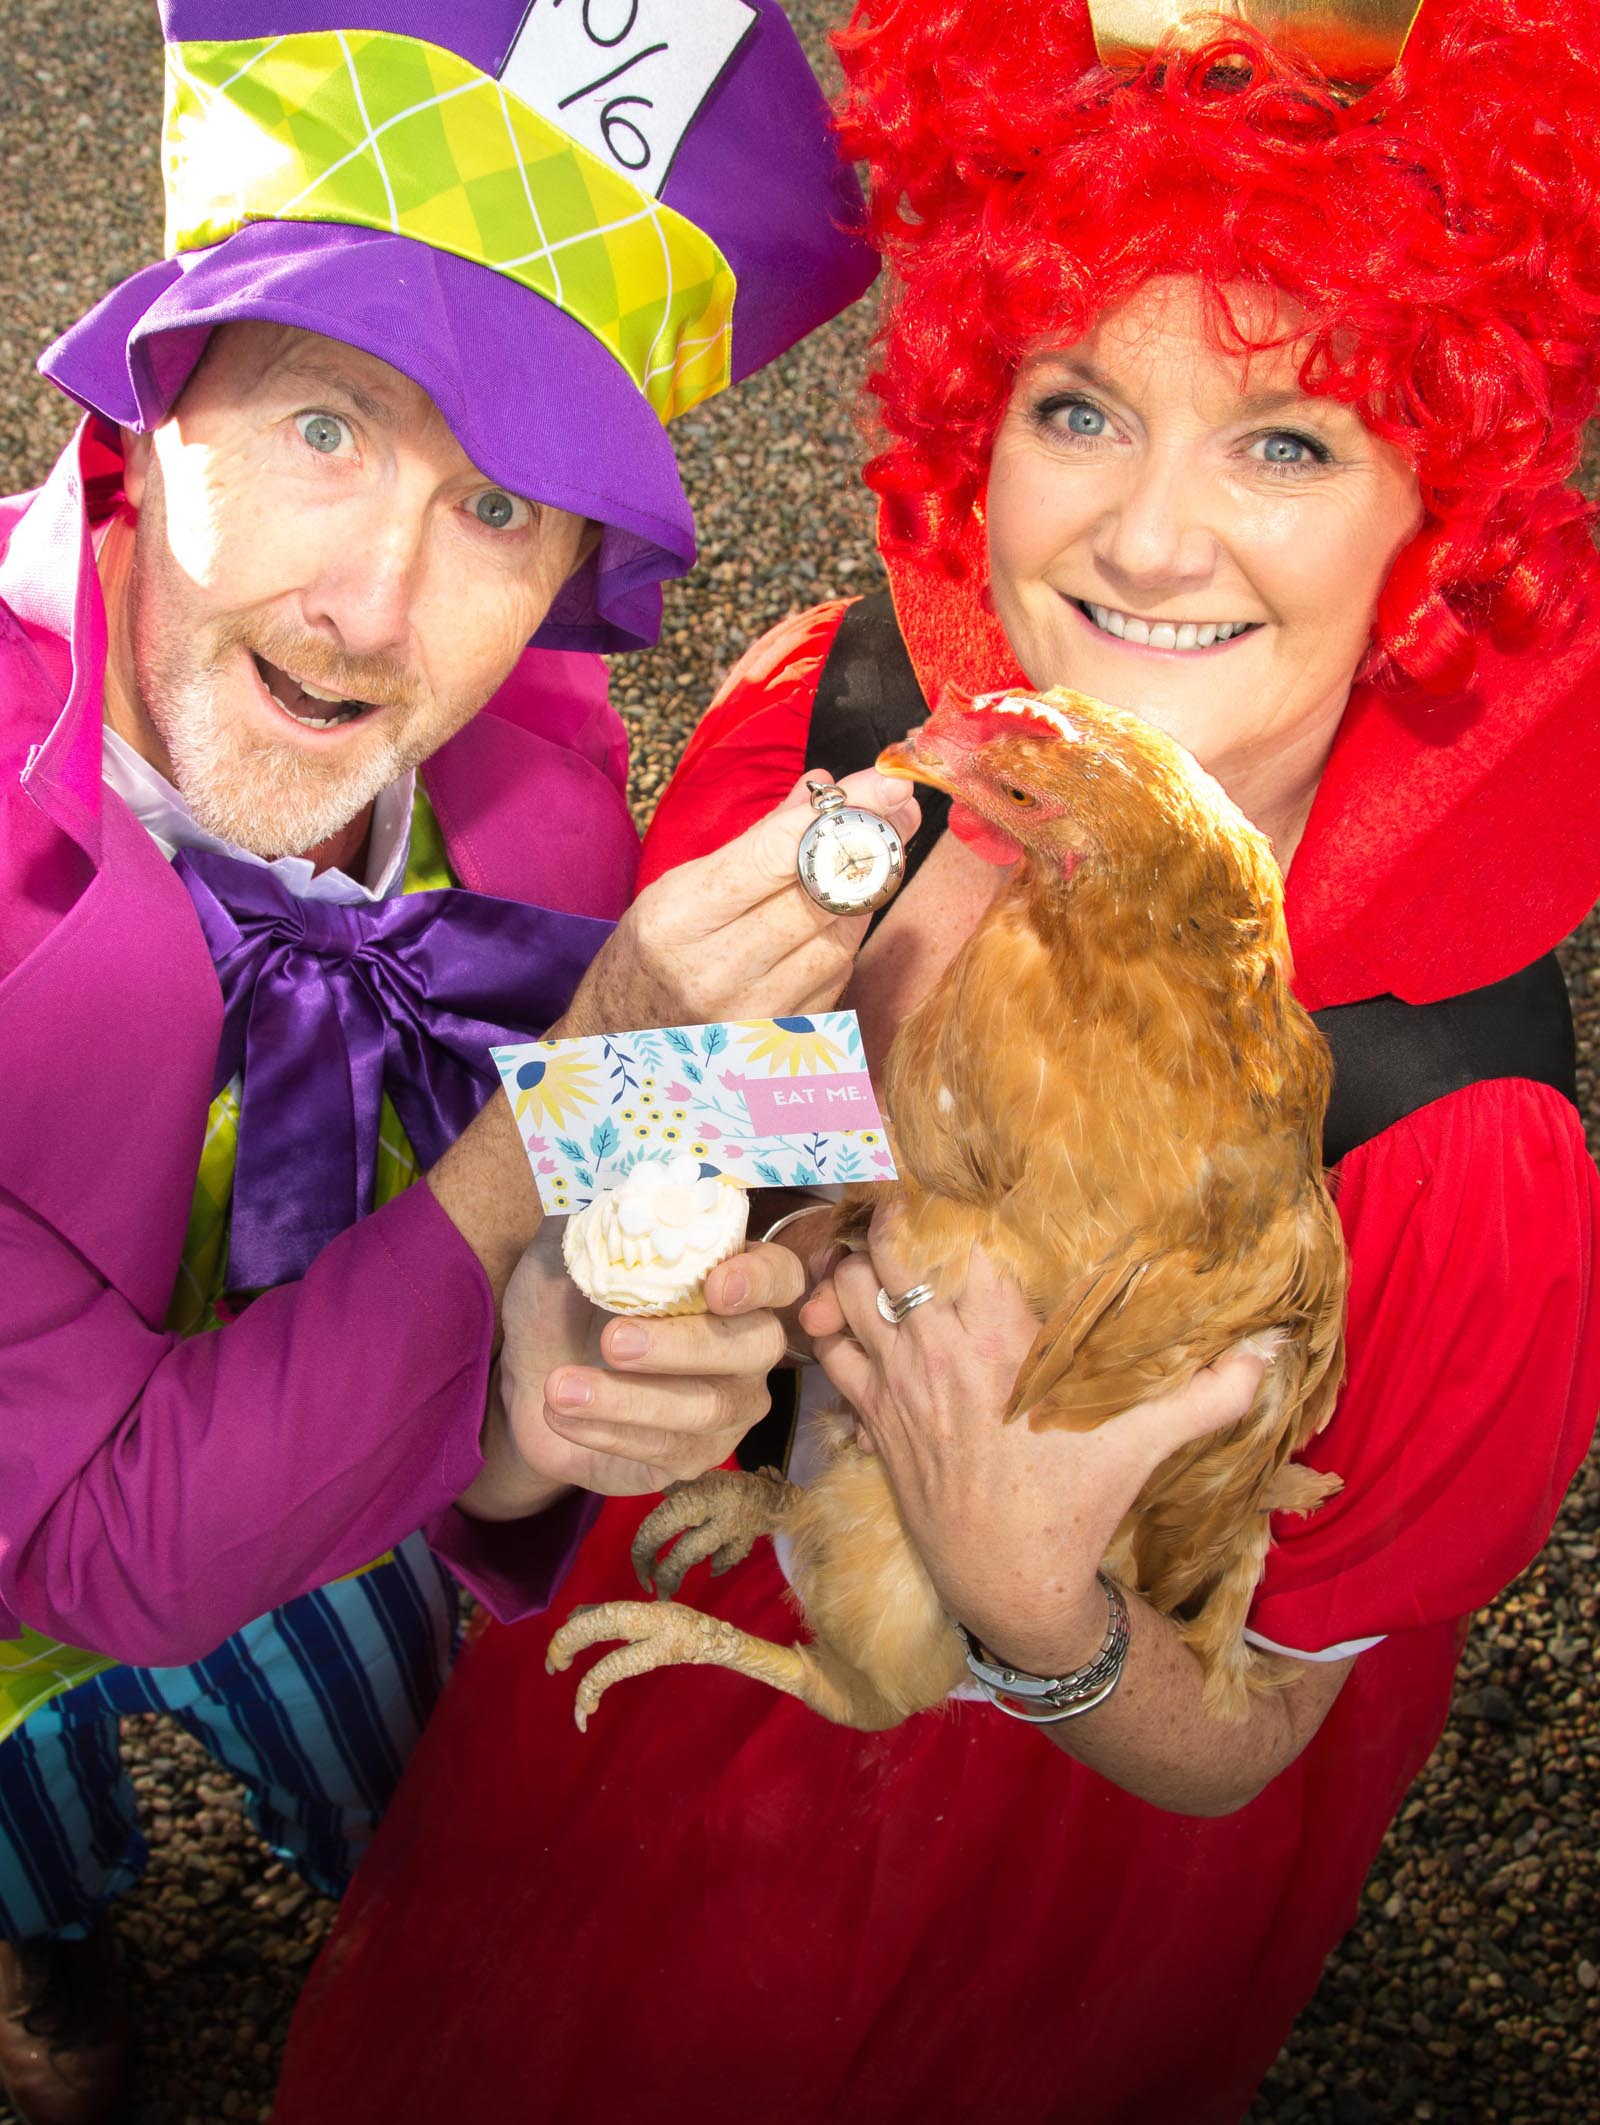 Bout Yeh Brexit Mad Hatters Tea Party photo 9192 by Bout Yeh photographers Belfast